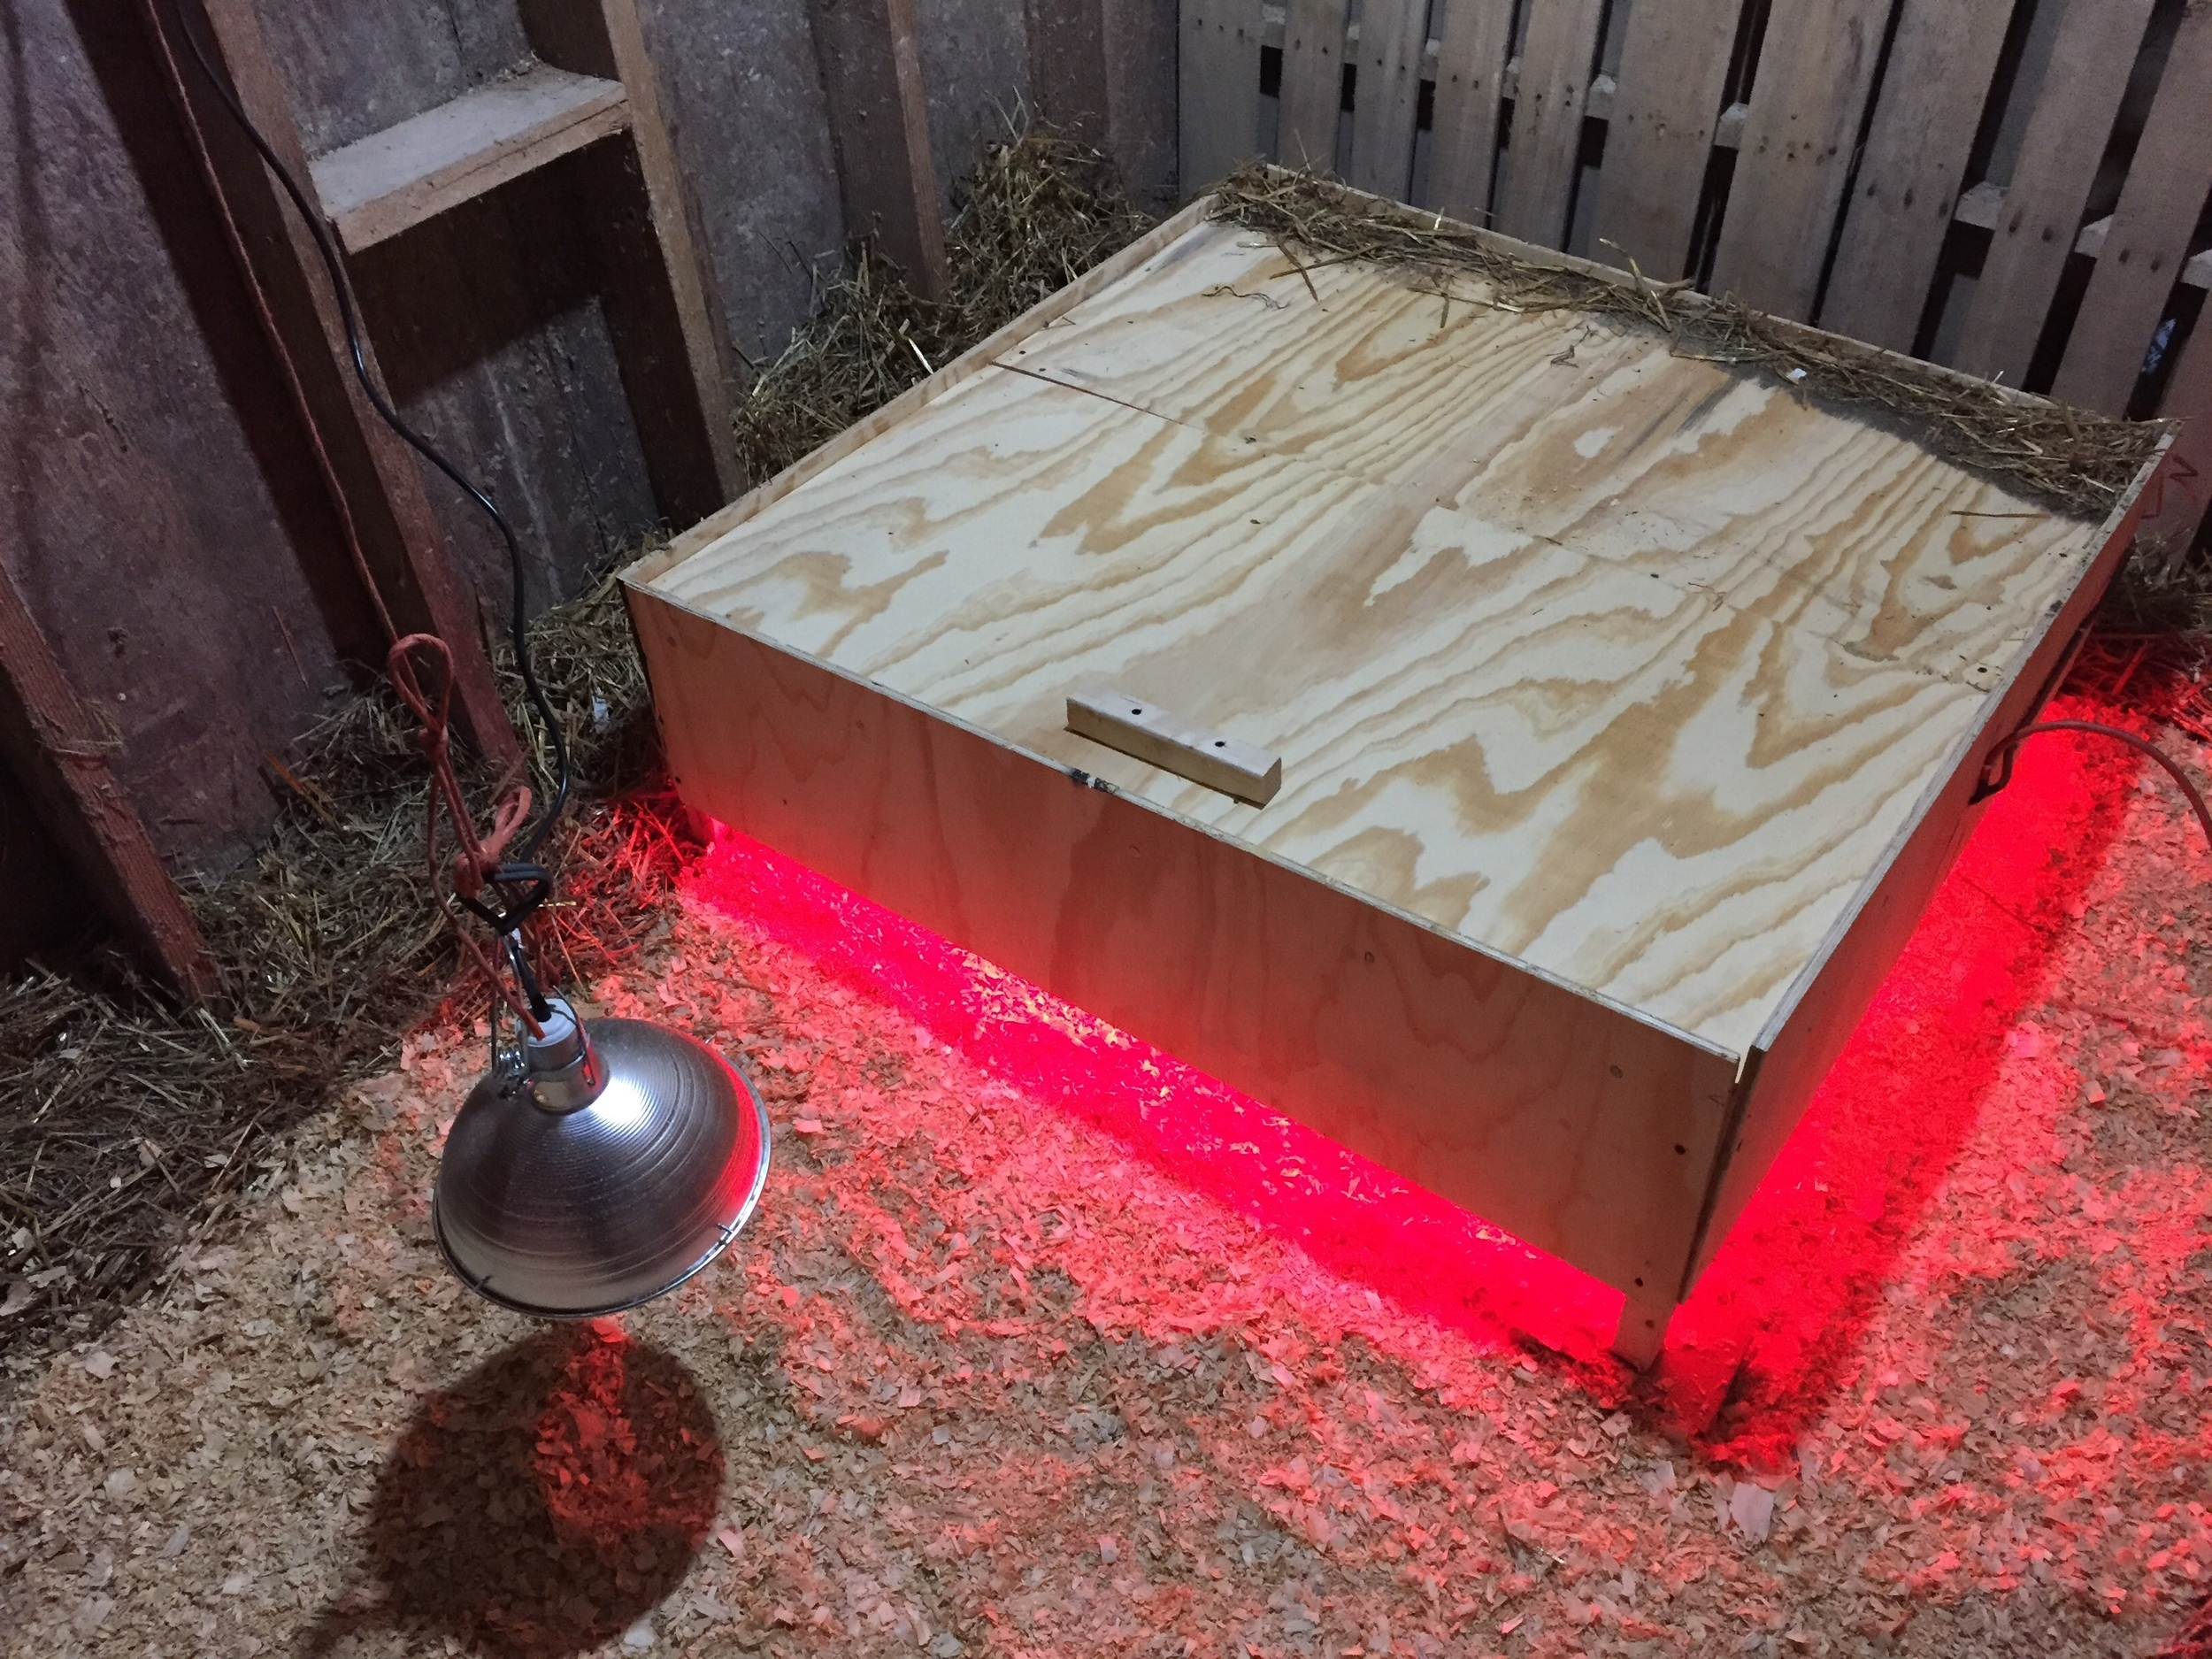 Ohio Brooder, straw around border to prevent drafts, Country Boy pine shavings.